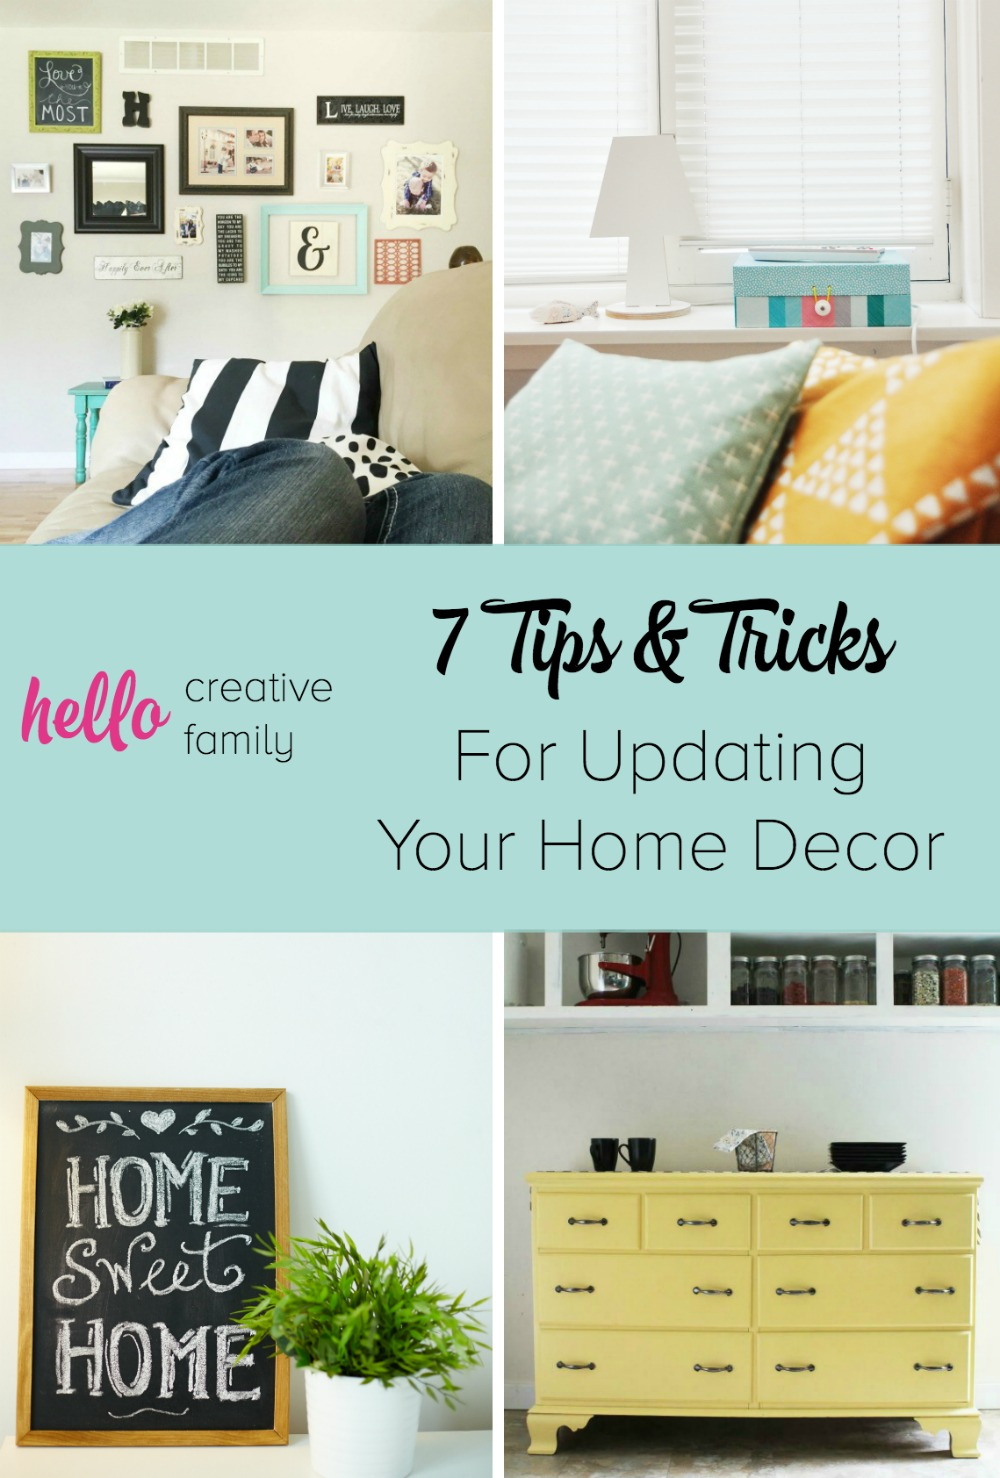 Superb 7 Tips And Tricks For Updating Home Decor